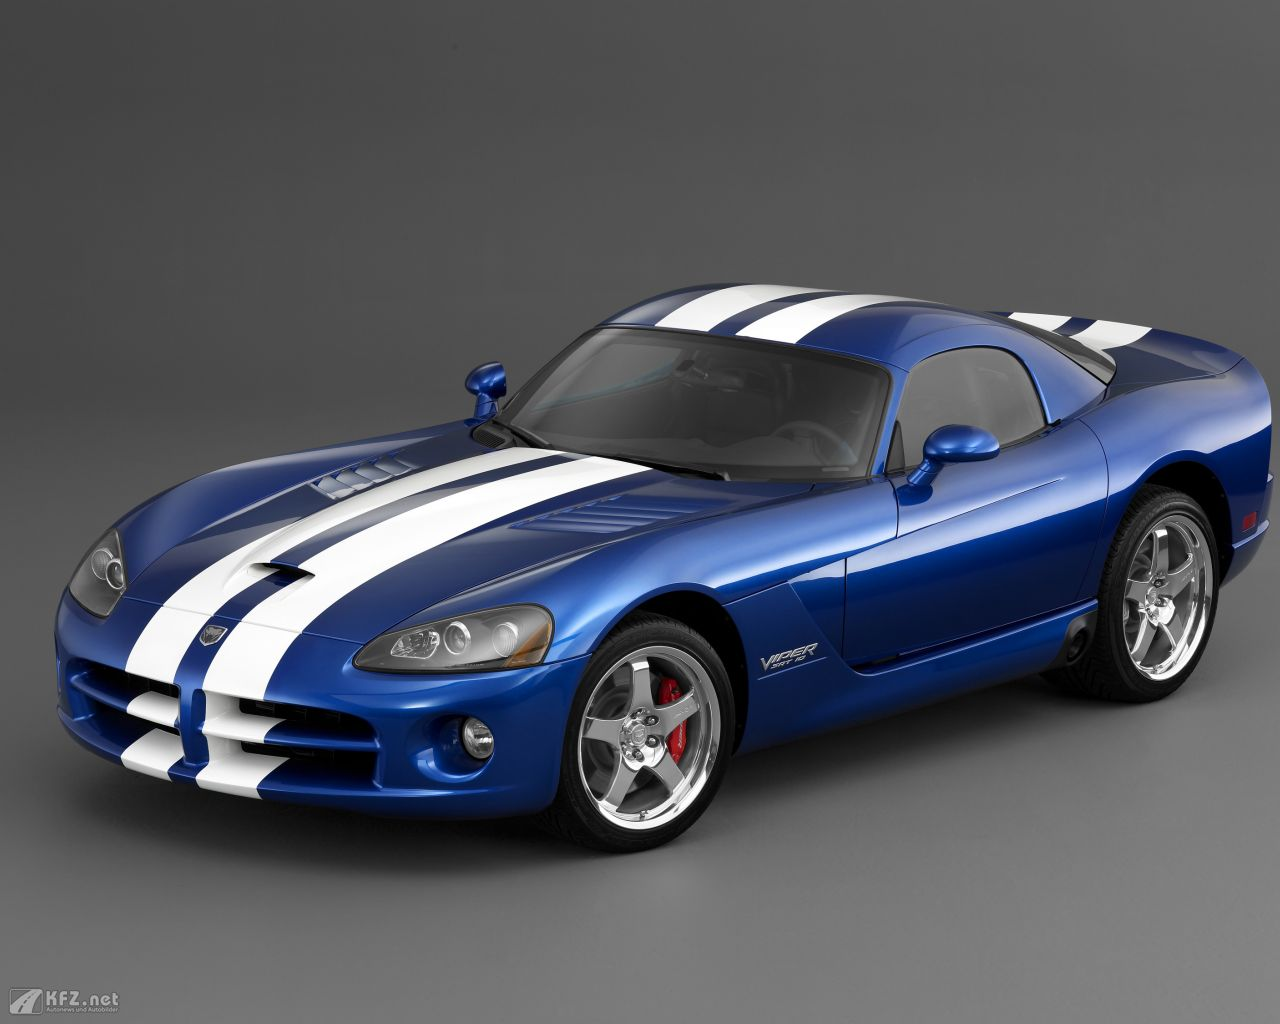 chrysler-dodge-viper-1280x1024-4